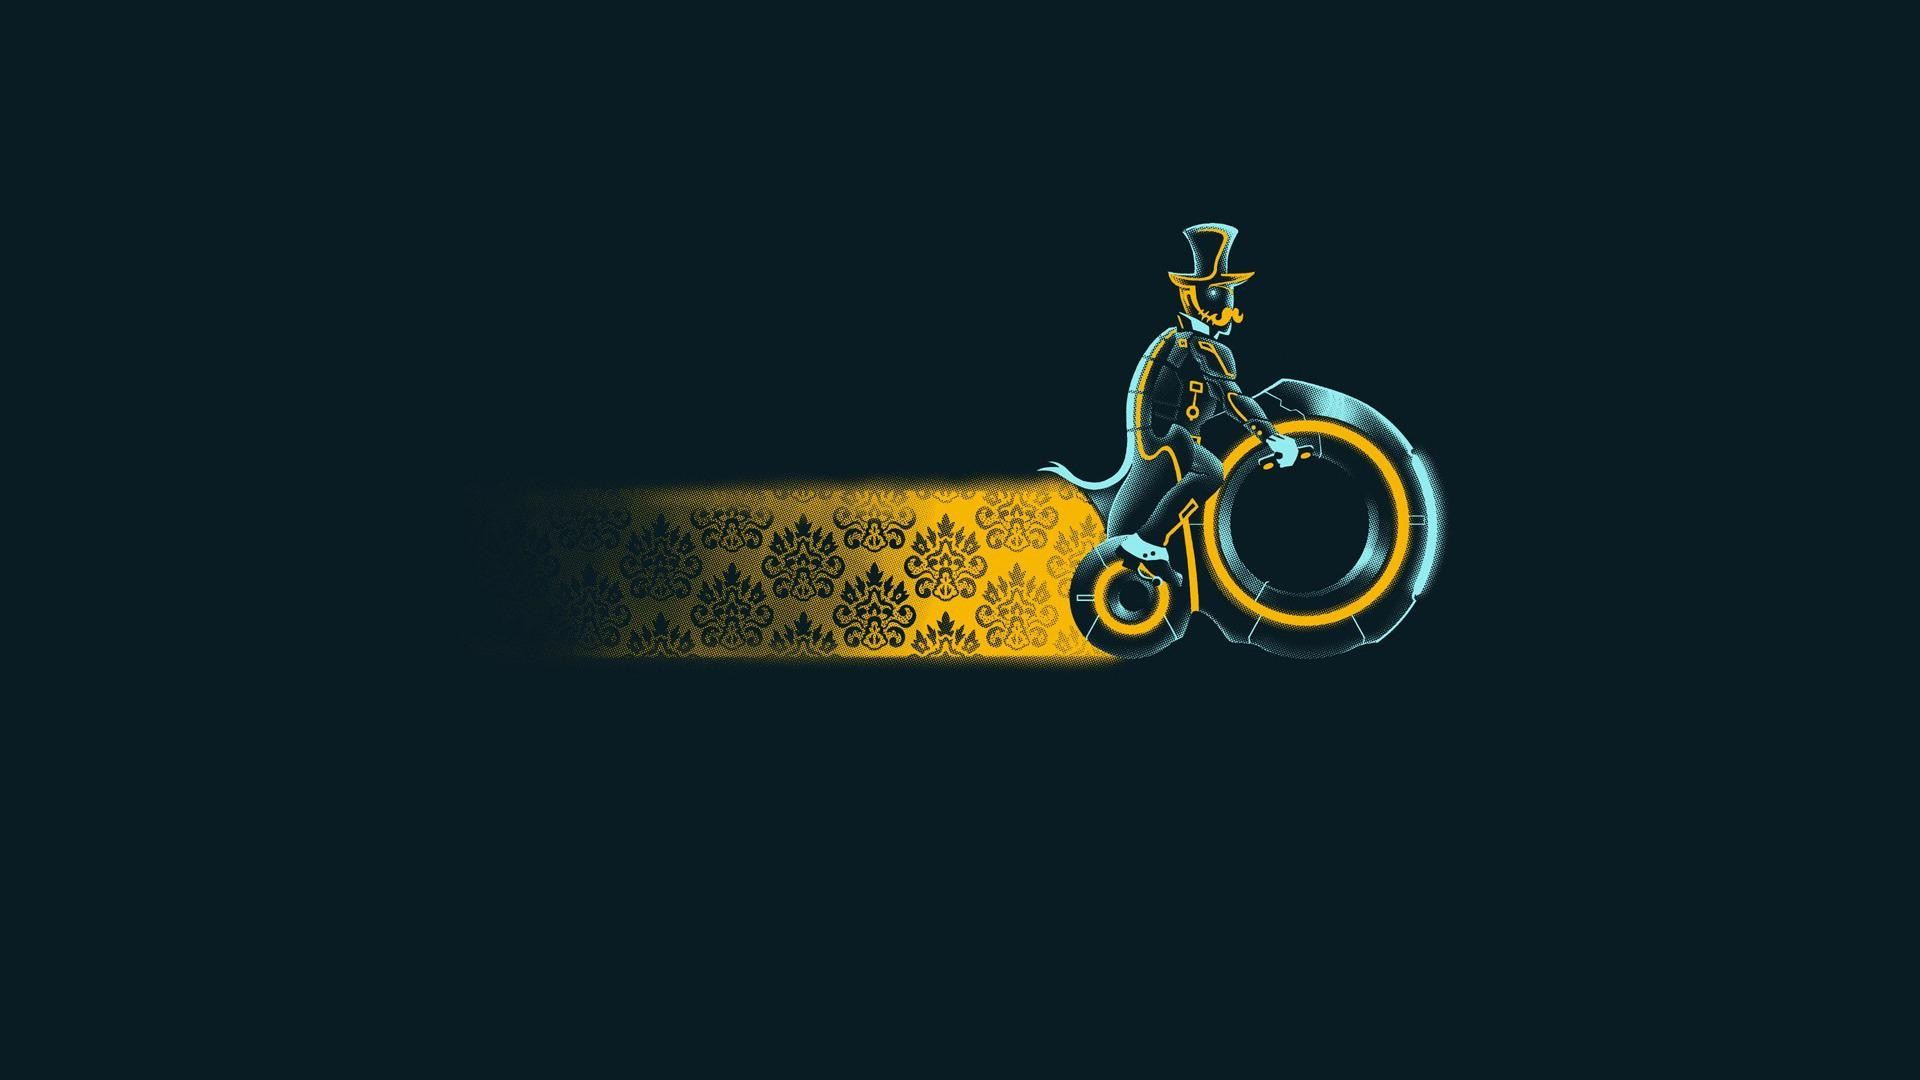 simple bike art 1080p - photo #12